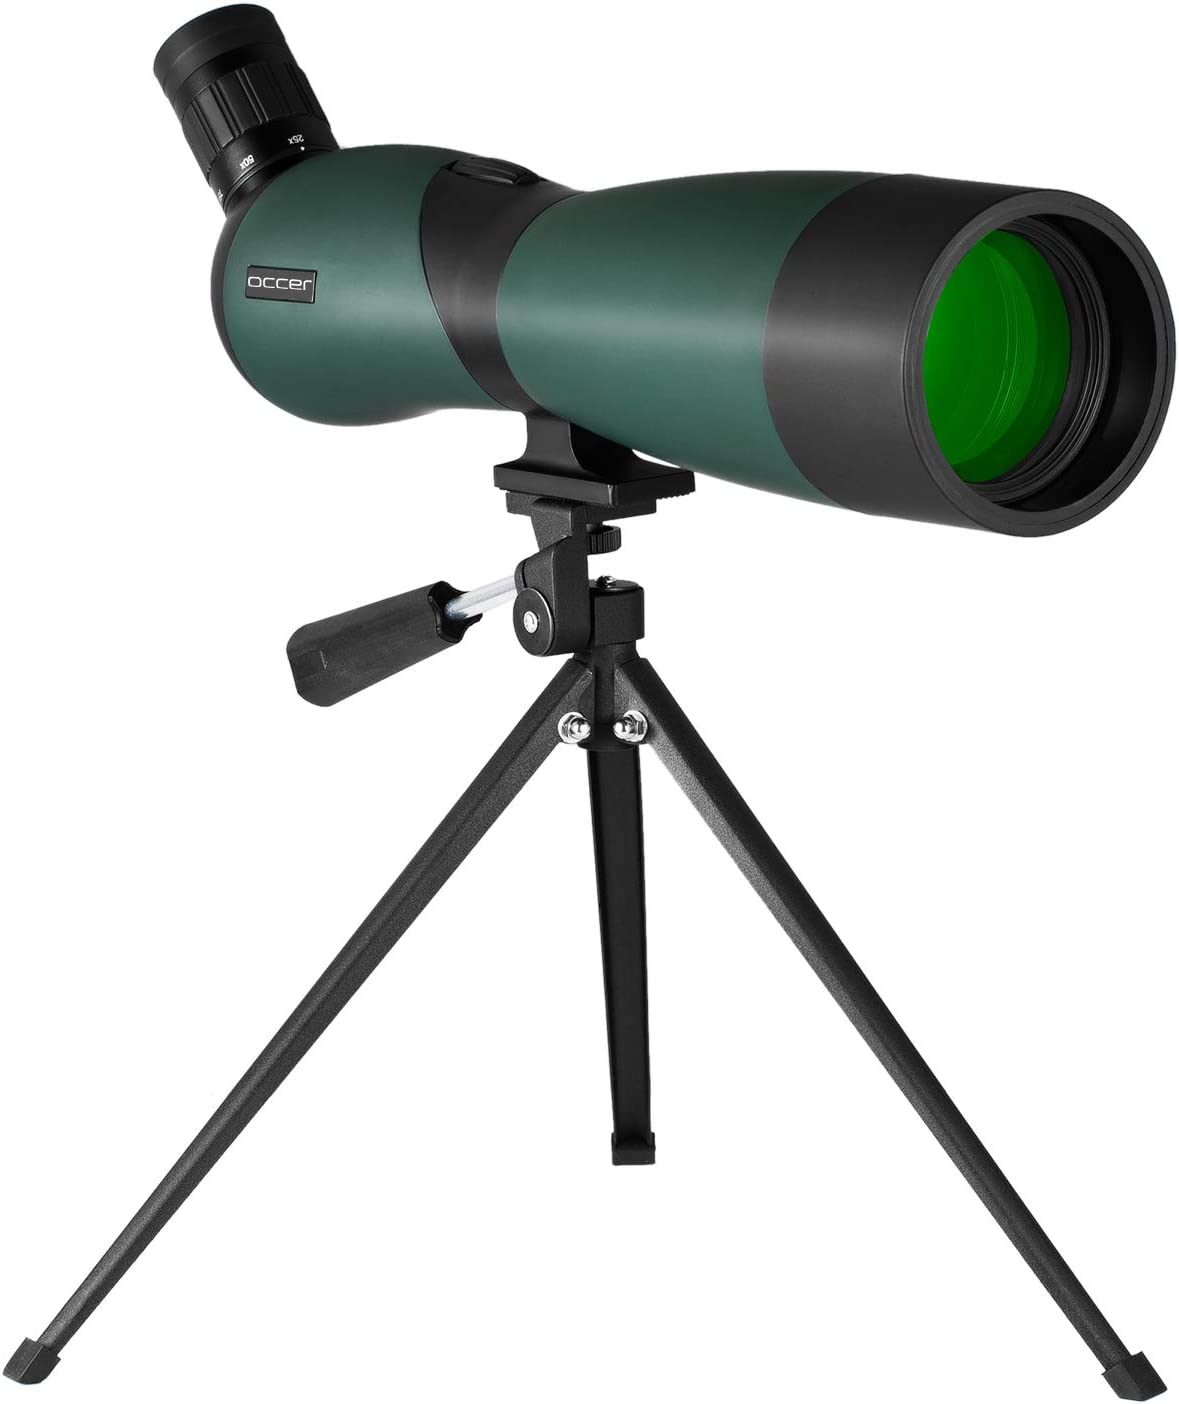 occer 25-75×70 Spotting Scope Telescope with Tripod,Long Eye Relief 45 Degree Angled Eyepiece Scopes,Waterproof Spotter Scope for Hunting,Target Shooting,Bird Watching,Archery,Wildlife-with Carry Case